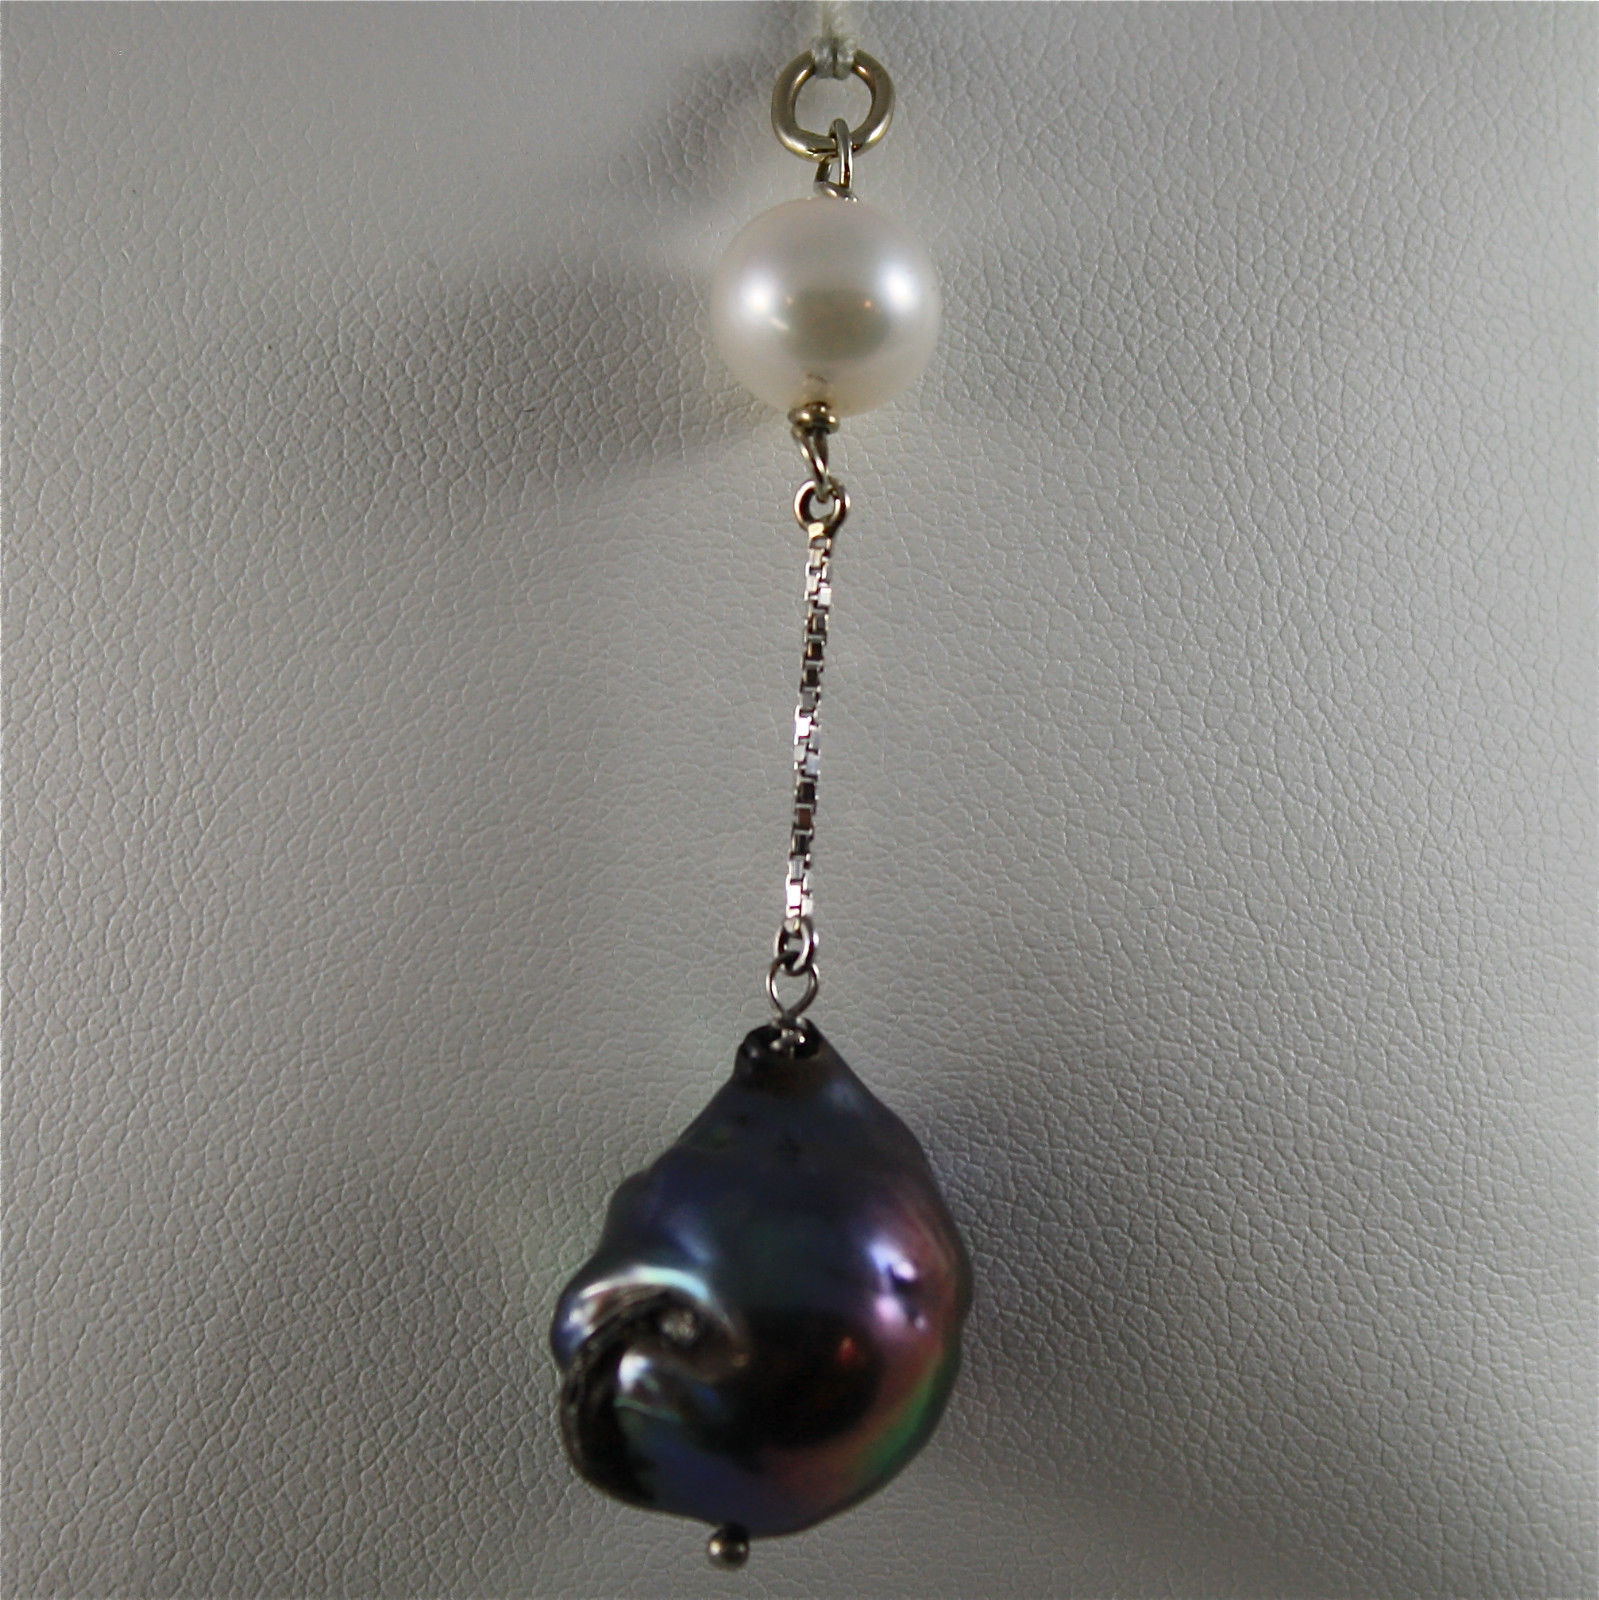 SOLID 18K WHITE GOLD PENDANT, 2,32 In, WHITE ROUND PEARL & BLACK BAROQUE PEARL.